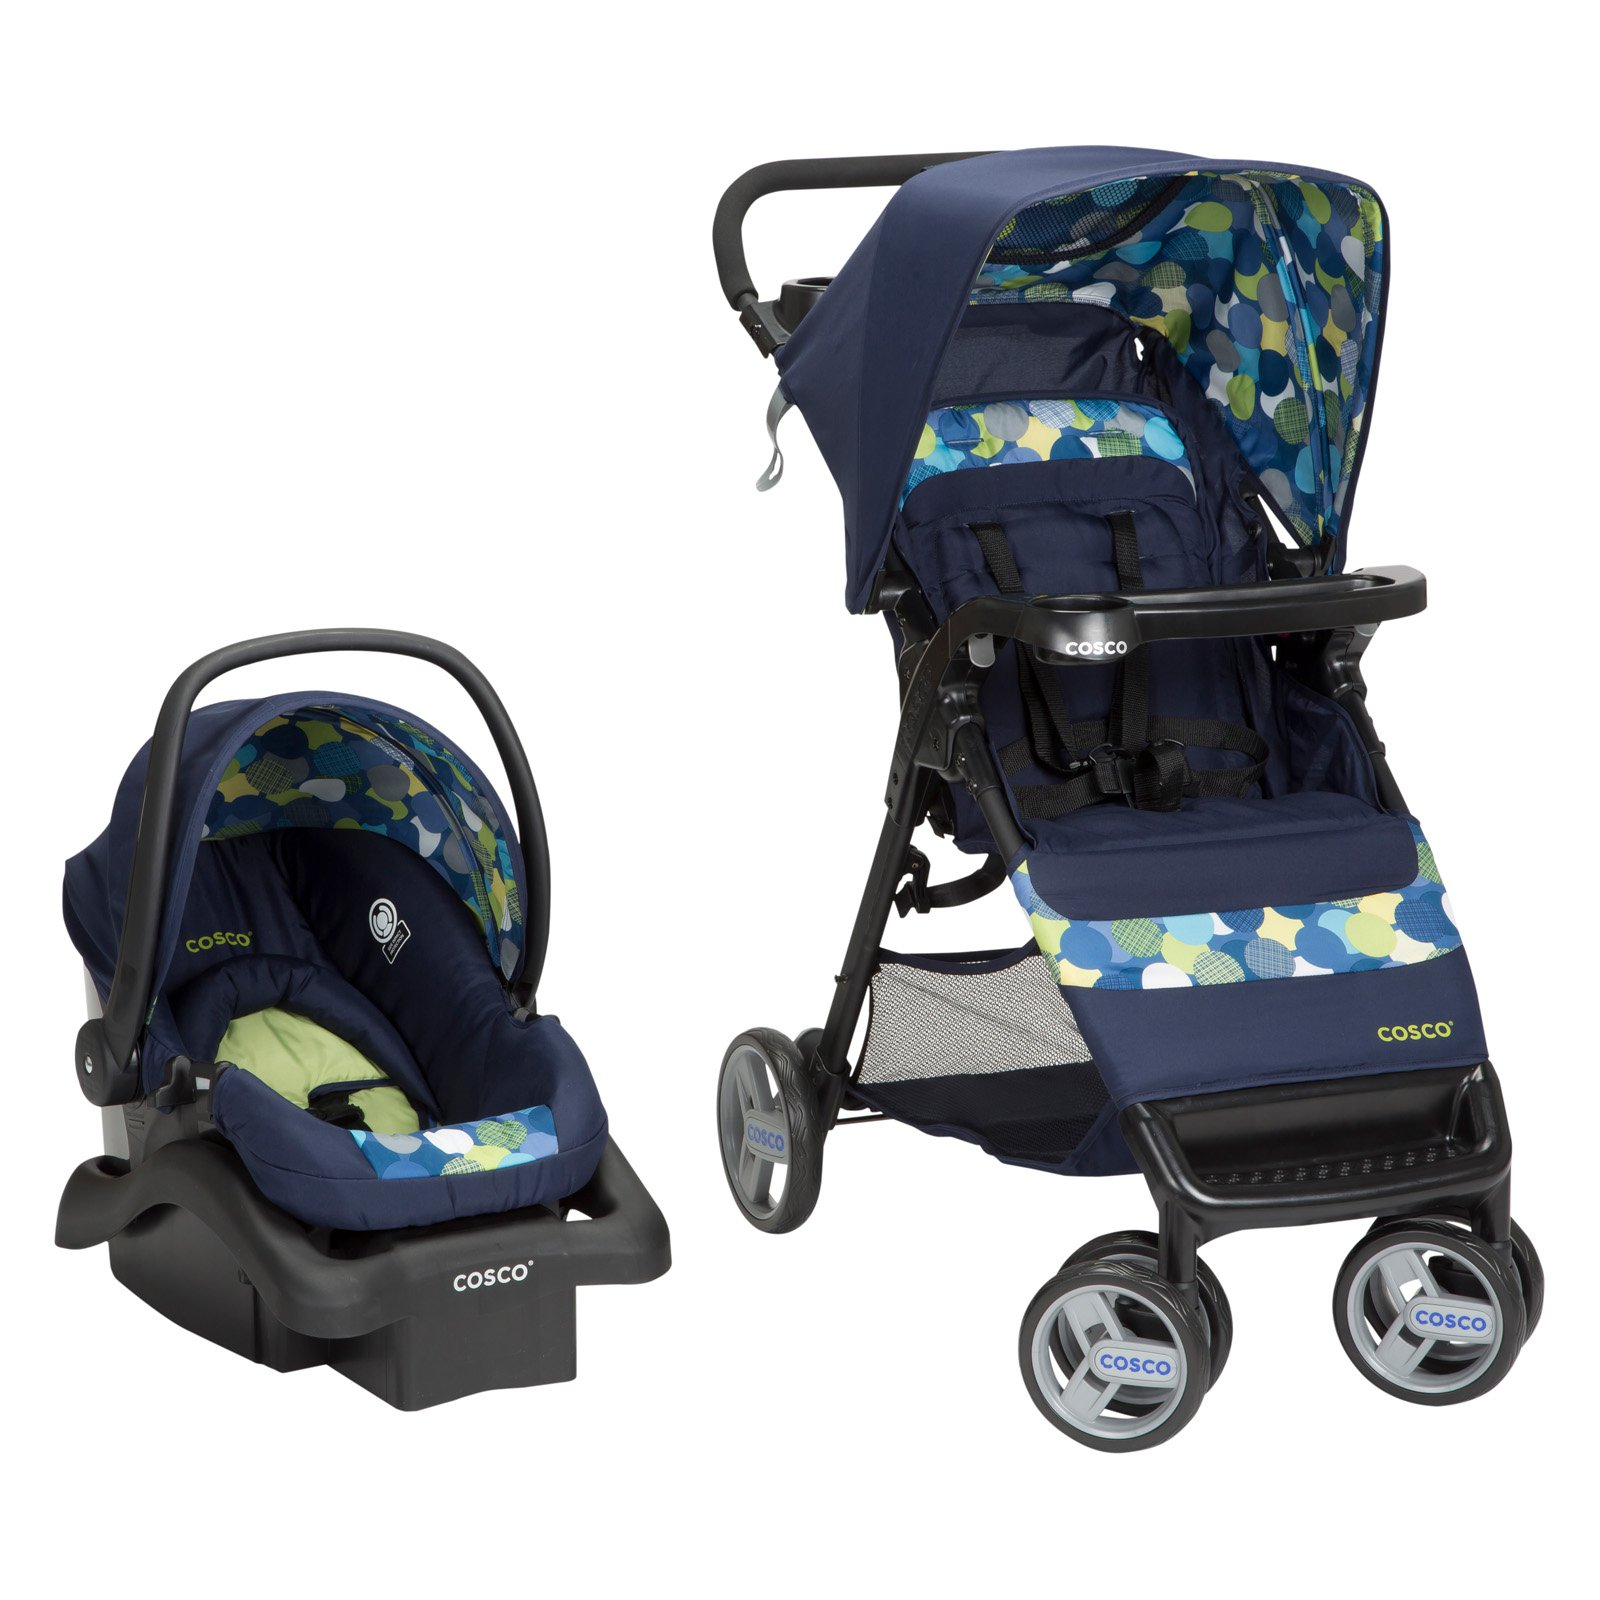 Cosco Simple Fold Travel System - Comet